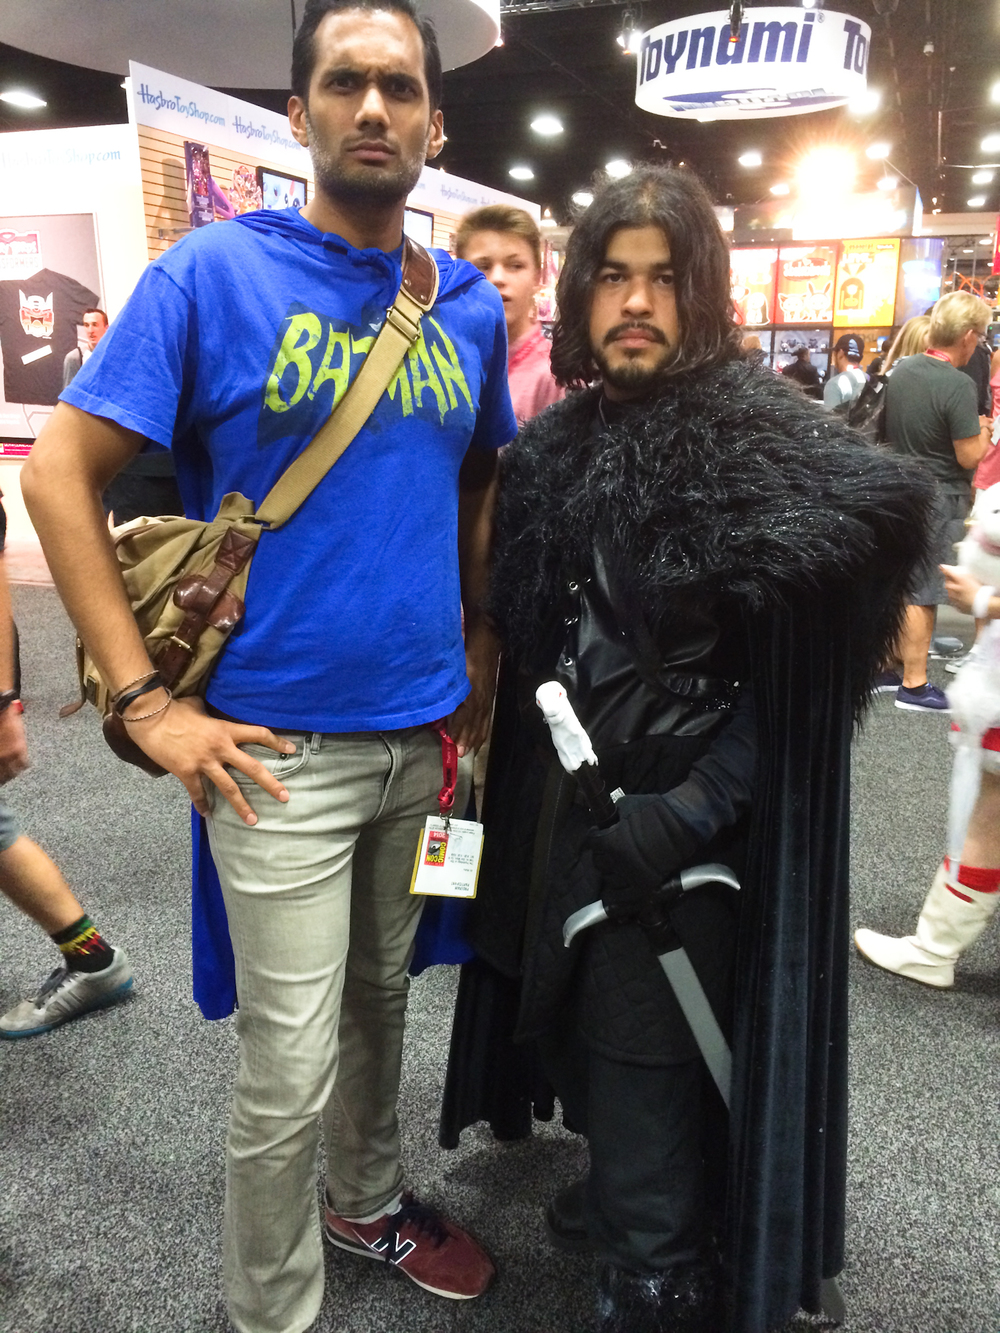 game-of-thrones-cosplay-san-diego-comic-con.jpg